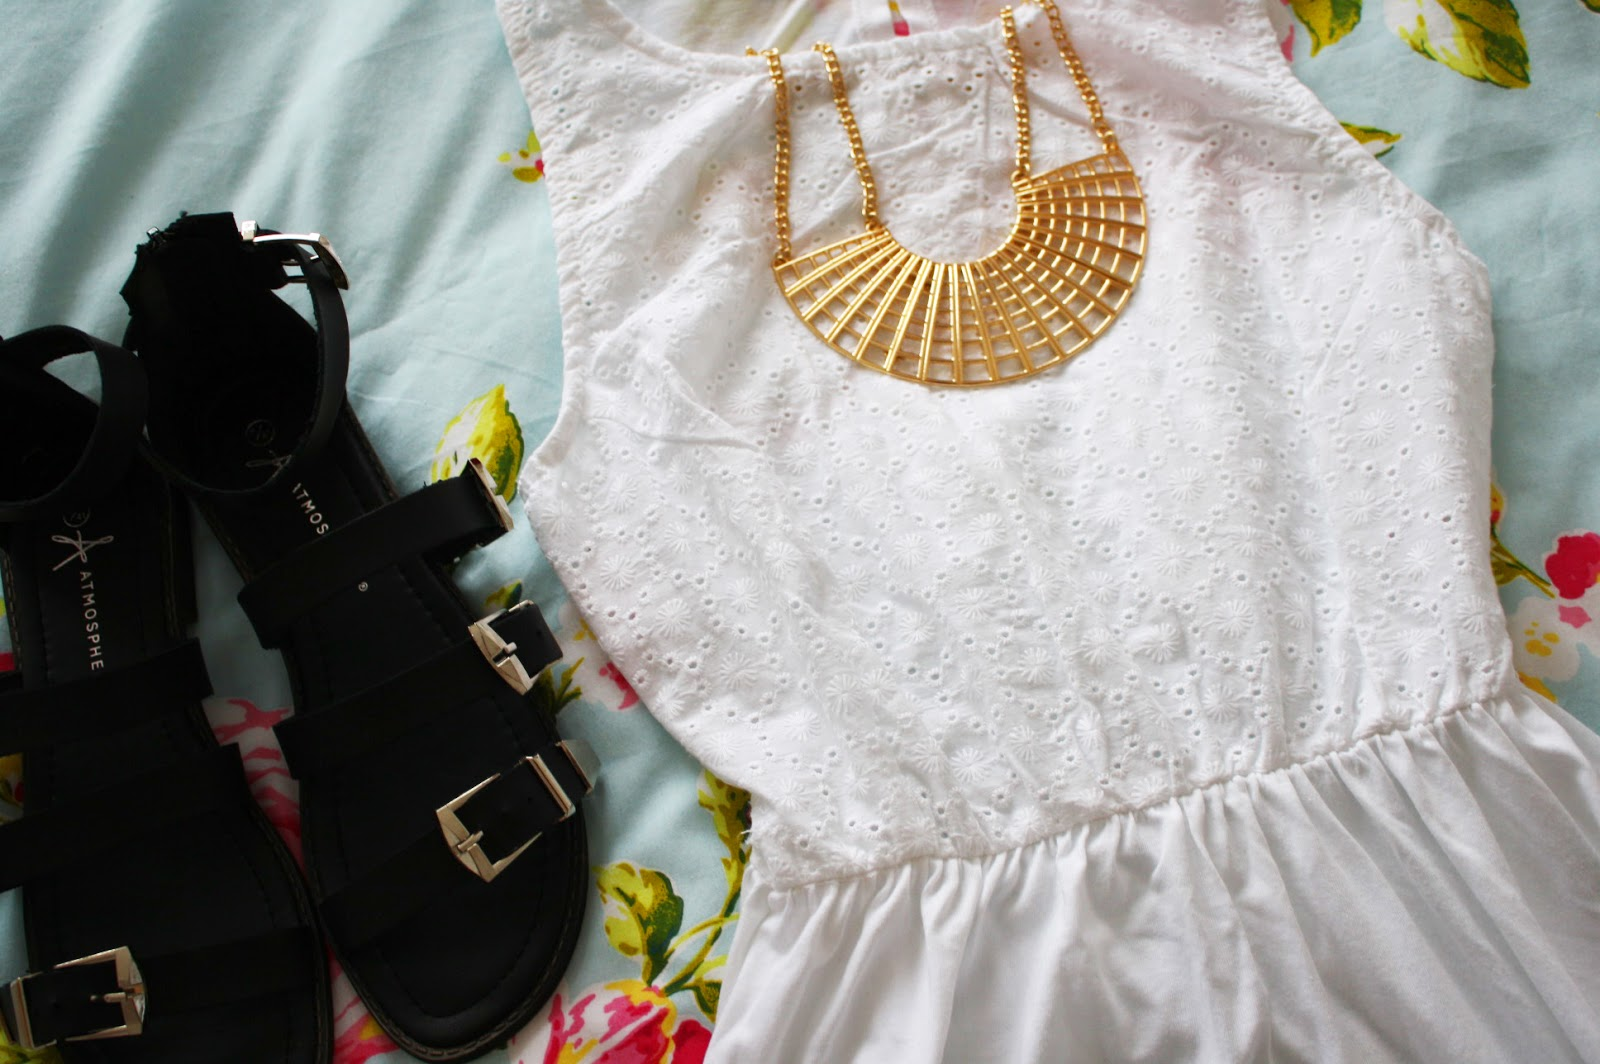 A floaty Primark dress with gold accessories